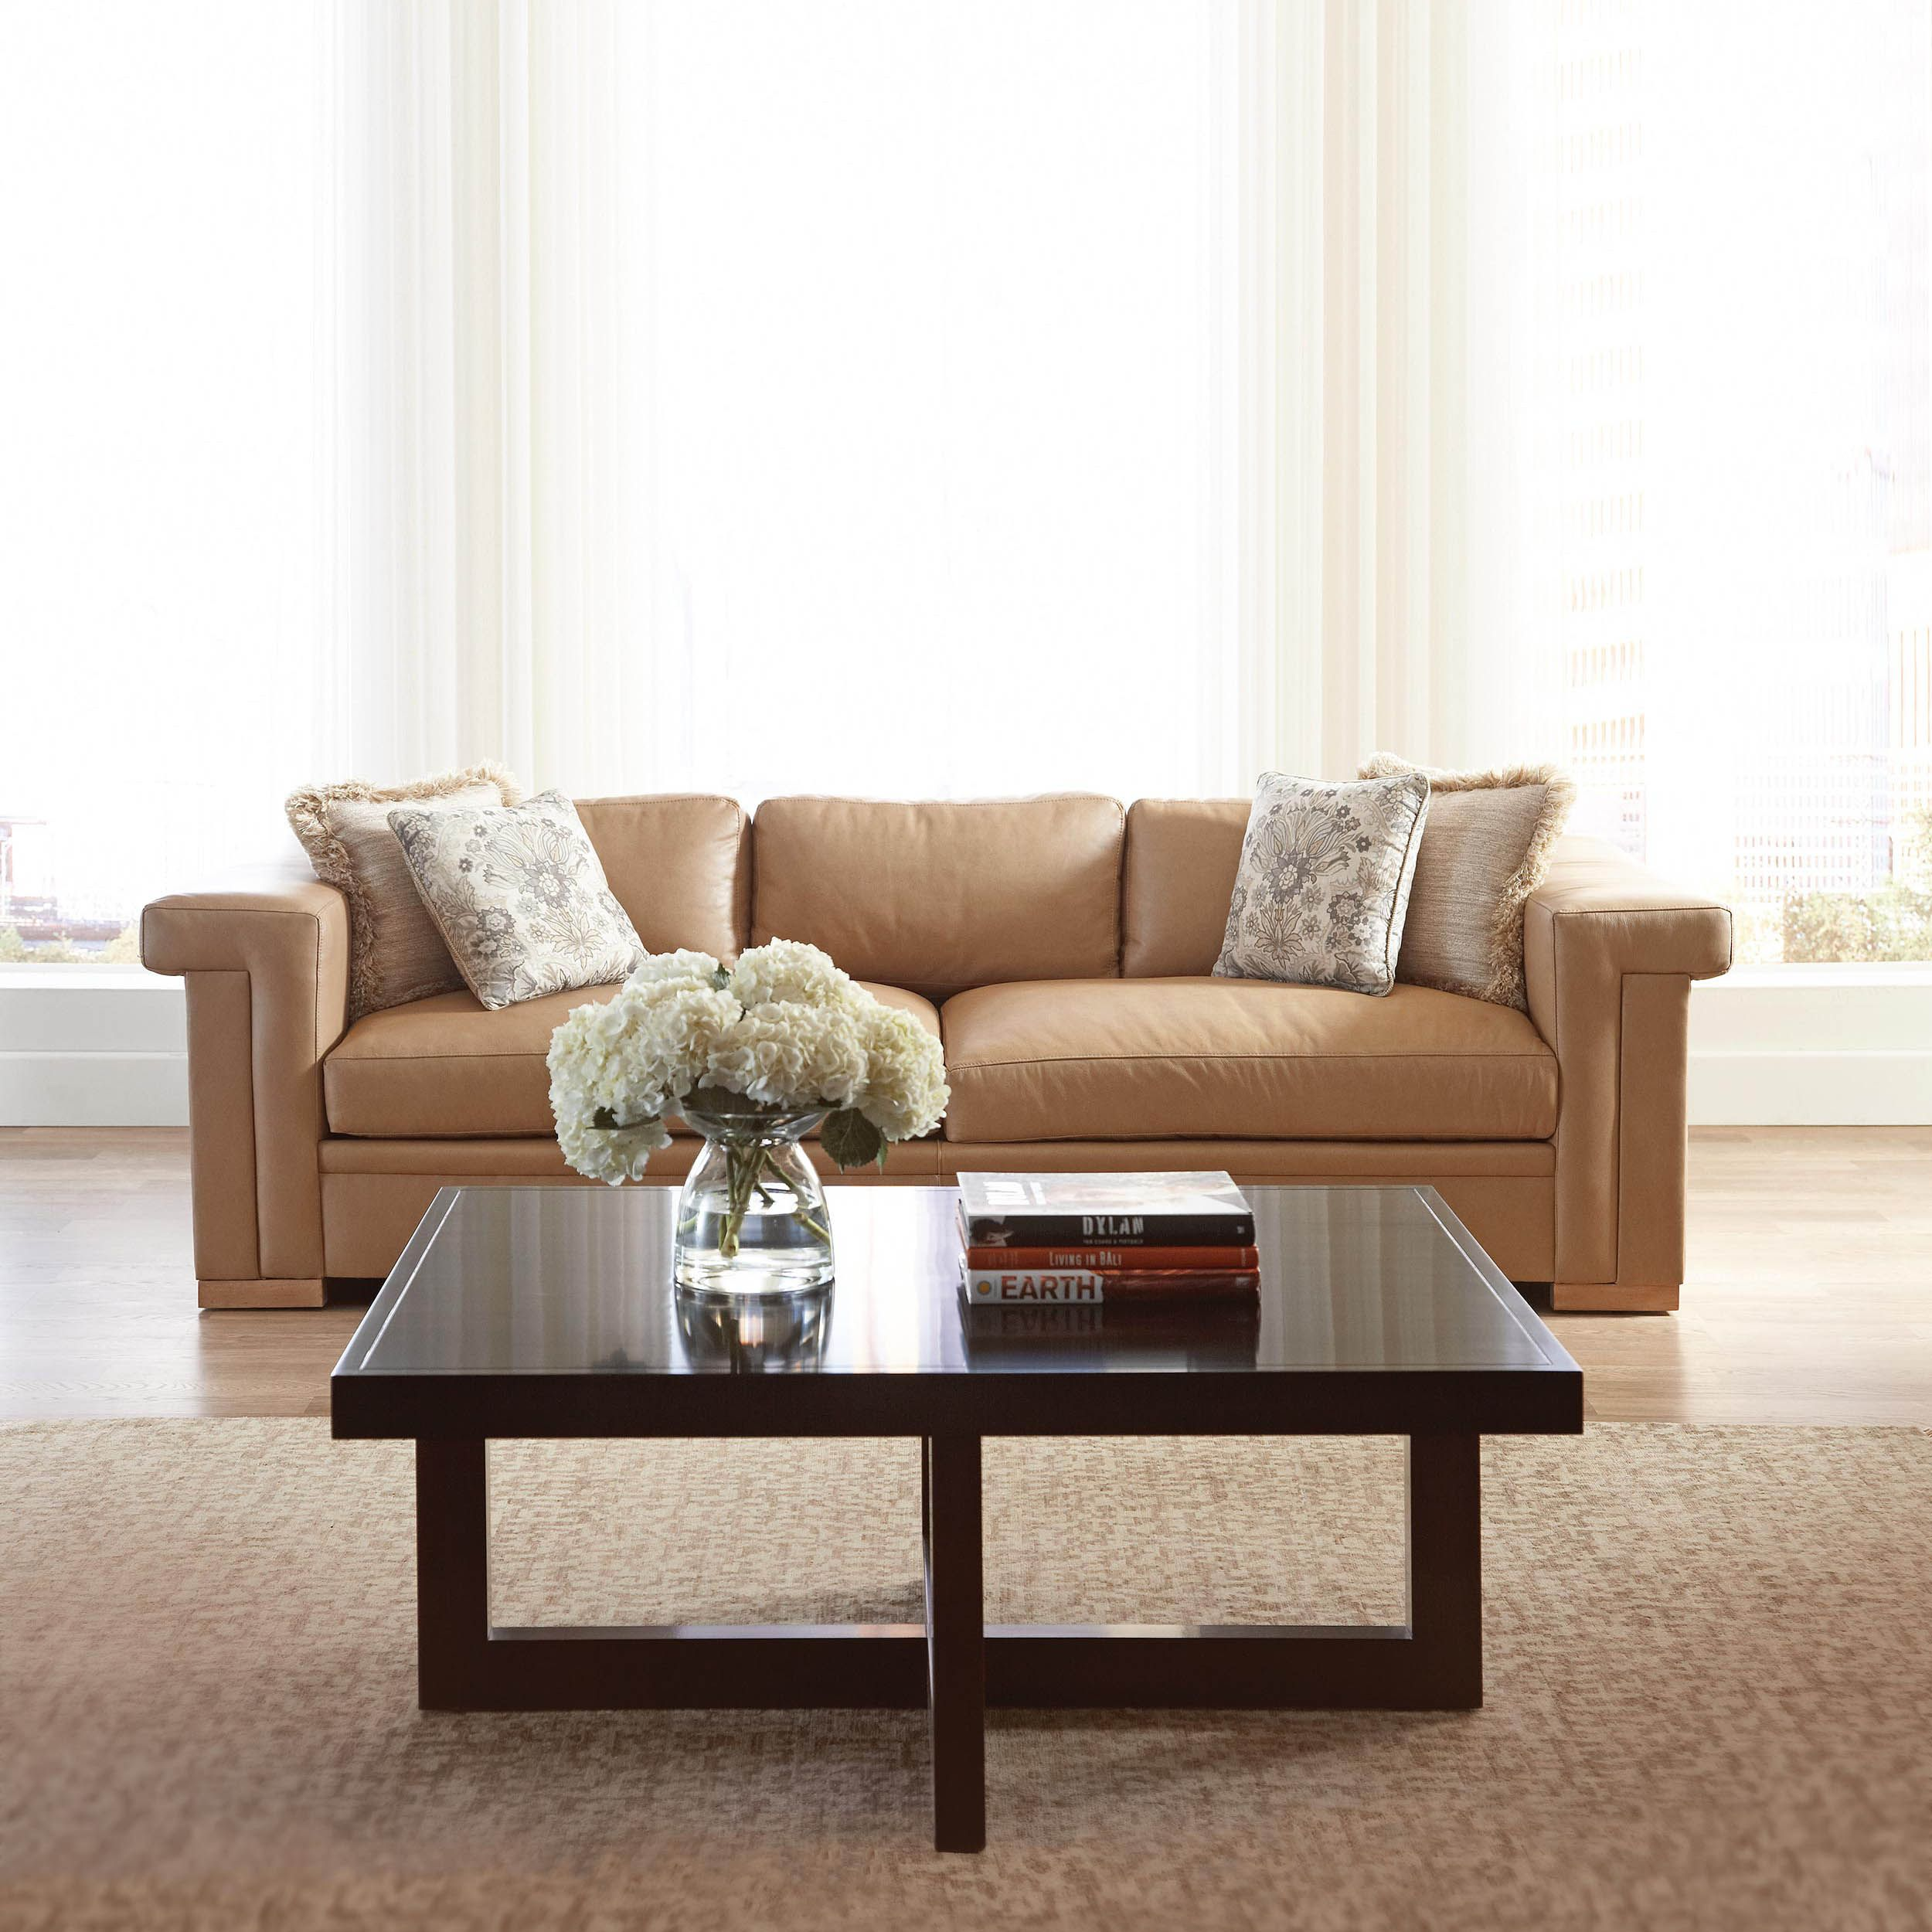 Stickley Furniture Leather Sofas Ashley Larkinhurst Sofa Set Carson Living Room Transitional